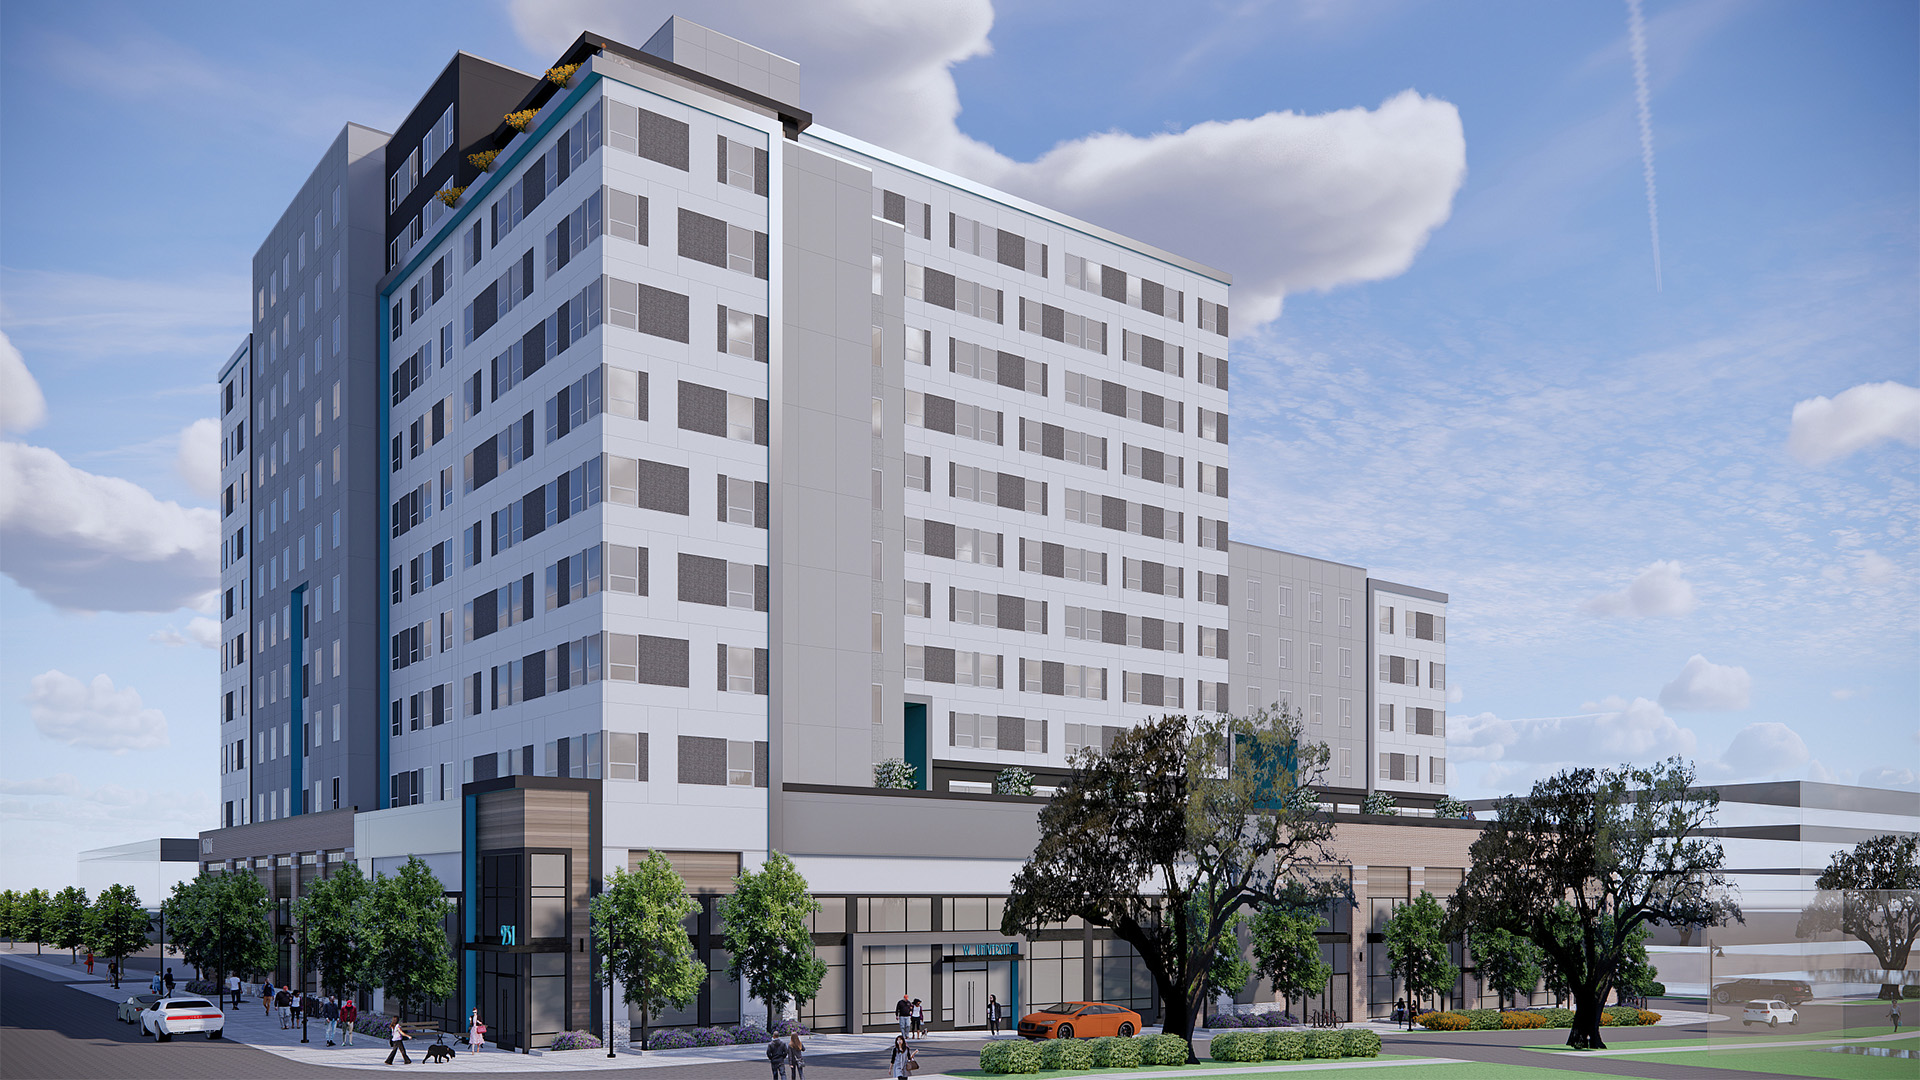 gainsville-student-accommodation-main-image